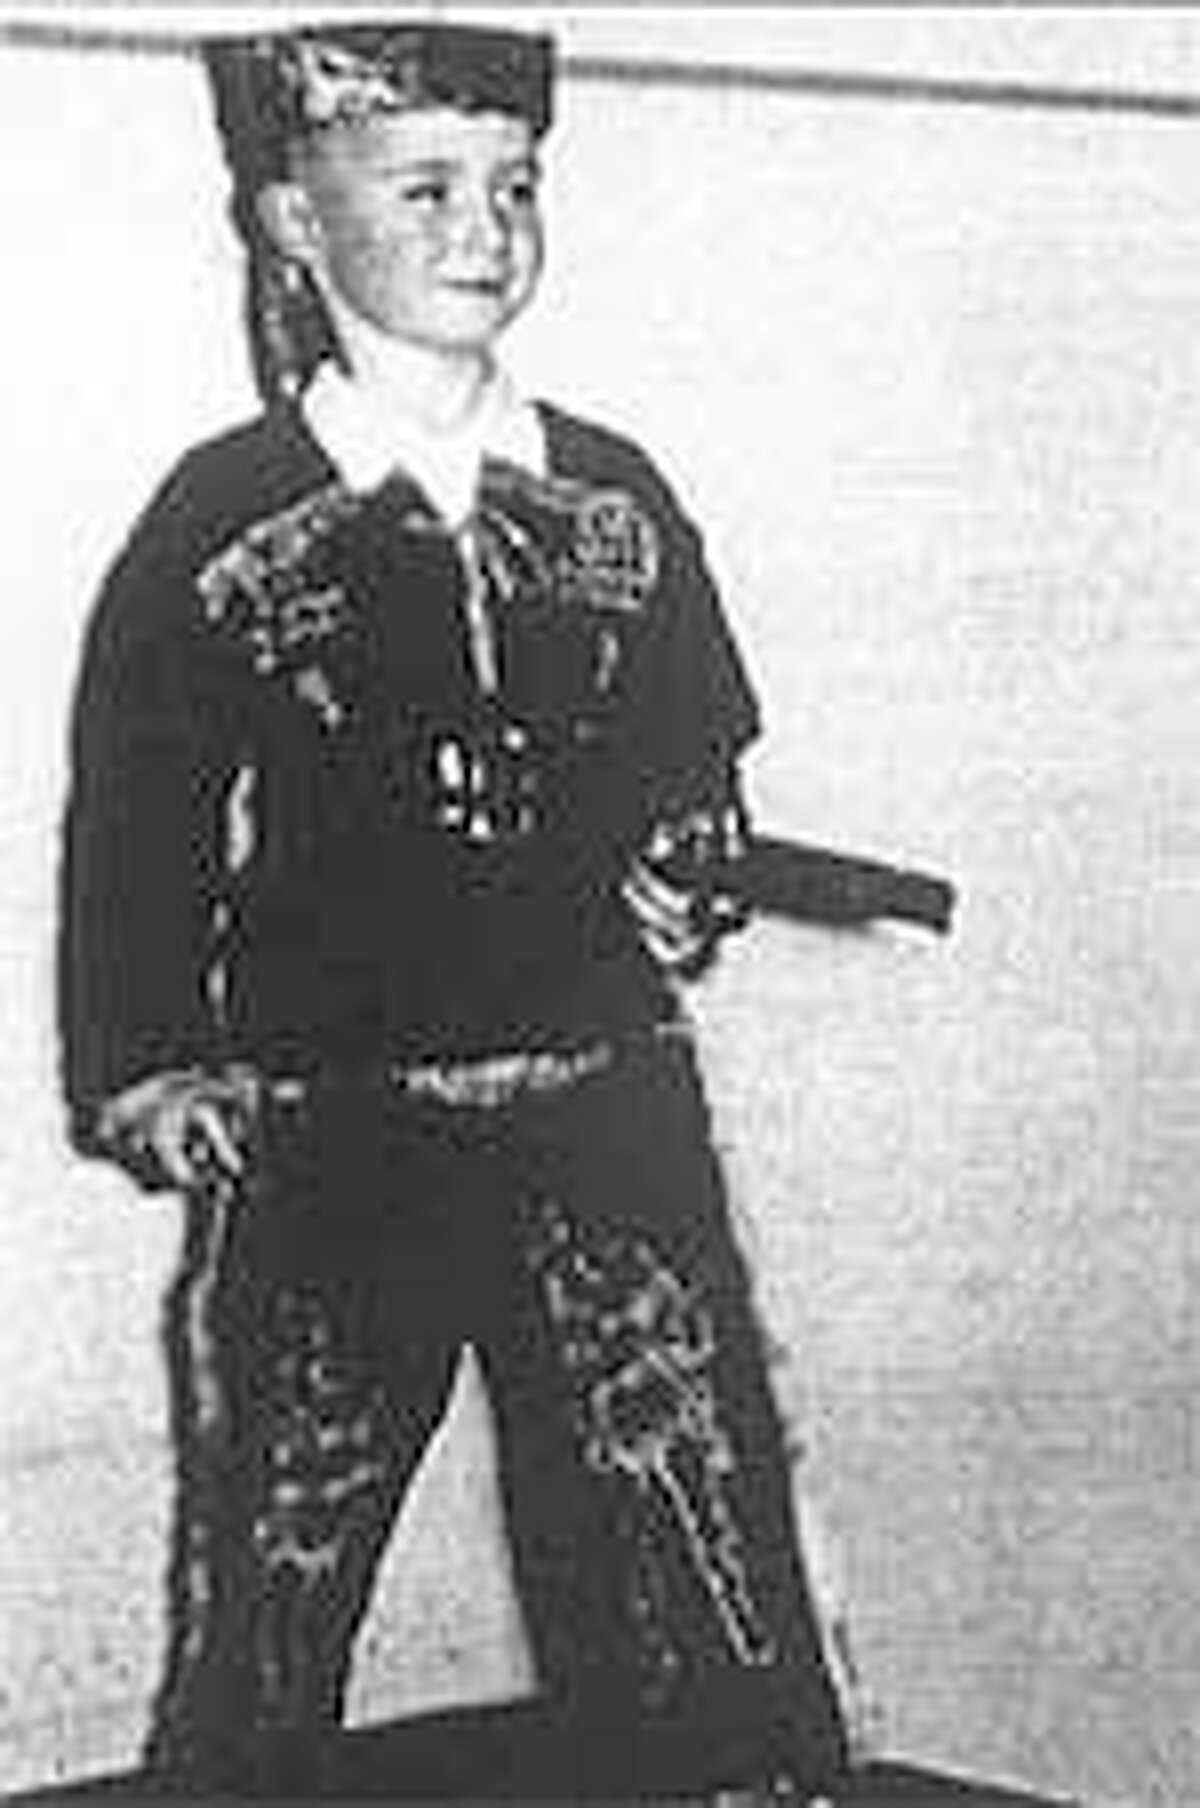 """Singer Phil Collins Alamo education began at an early age when he first saw Fess Parker in the """"Davy Crockett"""" TV series. Here he is at age 5 dressed up as Crockett."""